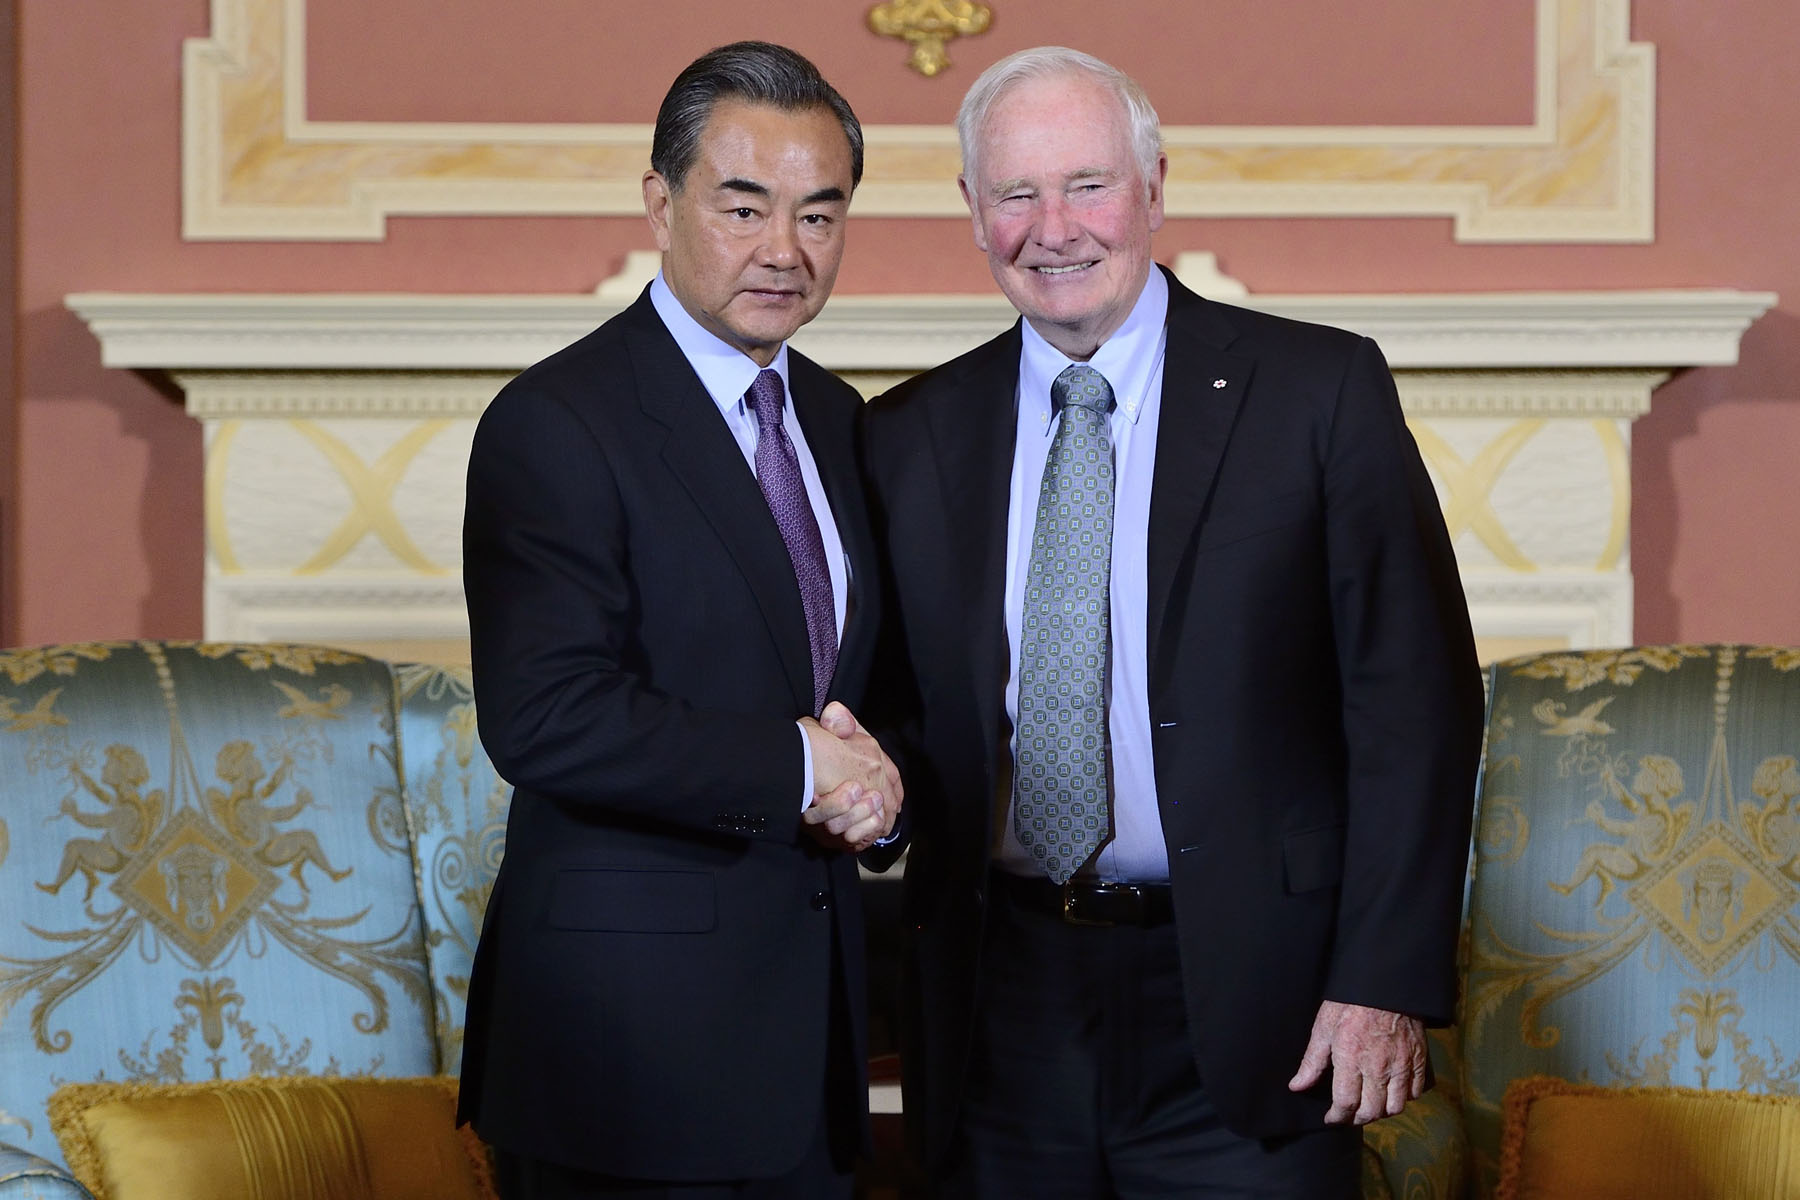 The Governor General met with His Excellency  Wang Yi, Minister of Foreign Affairs of the People's Republic of China, at Rideau Hall, on June 2, 2016.